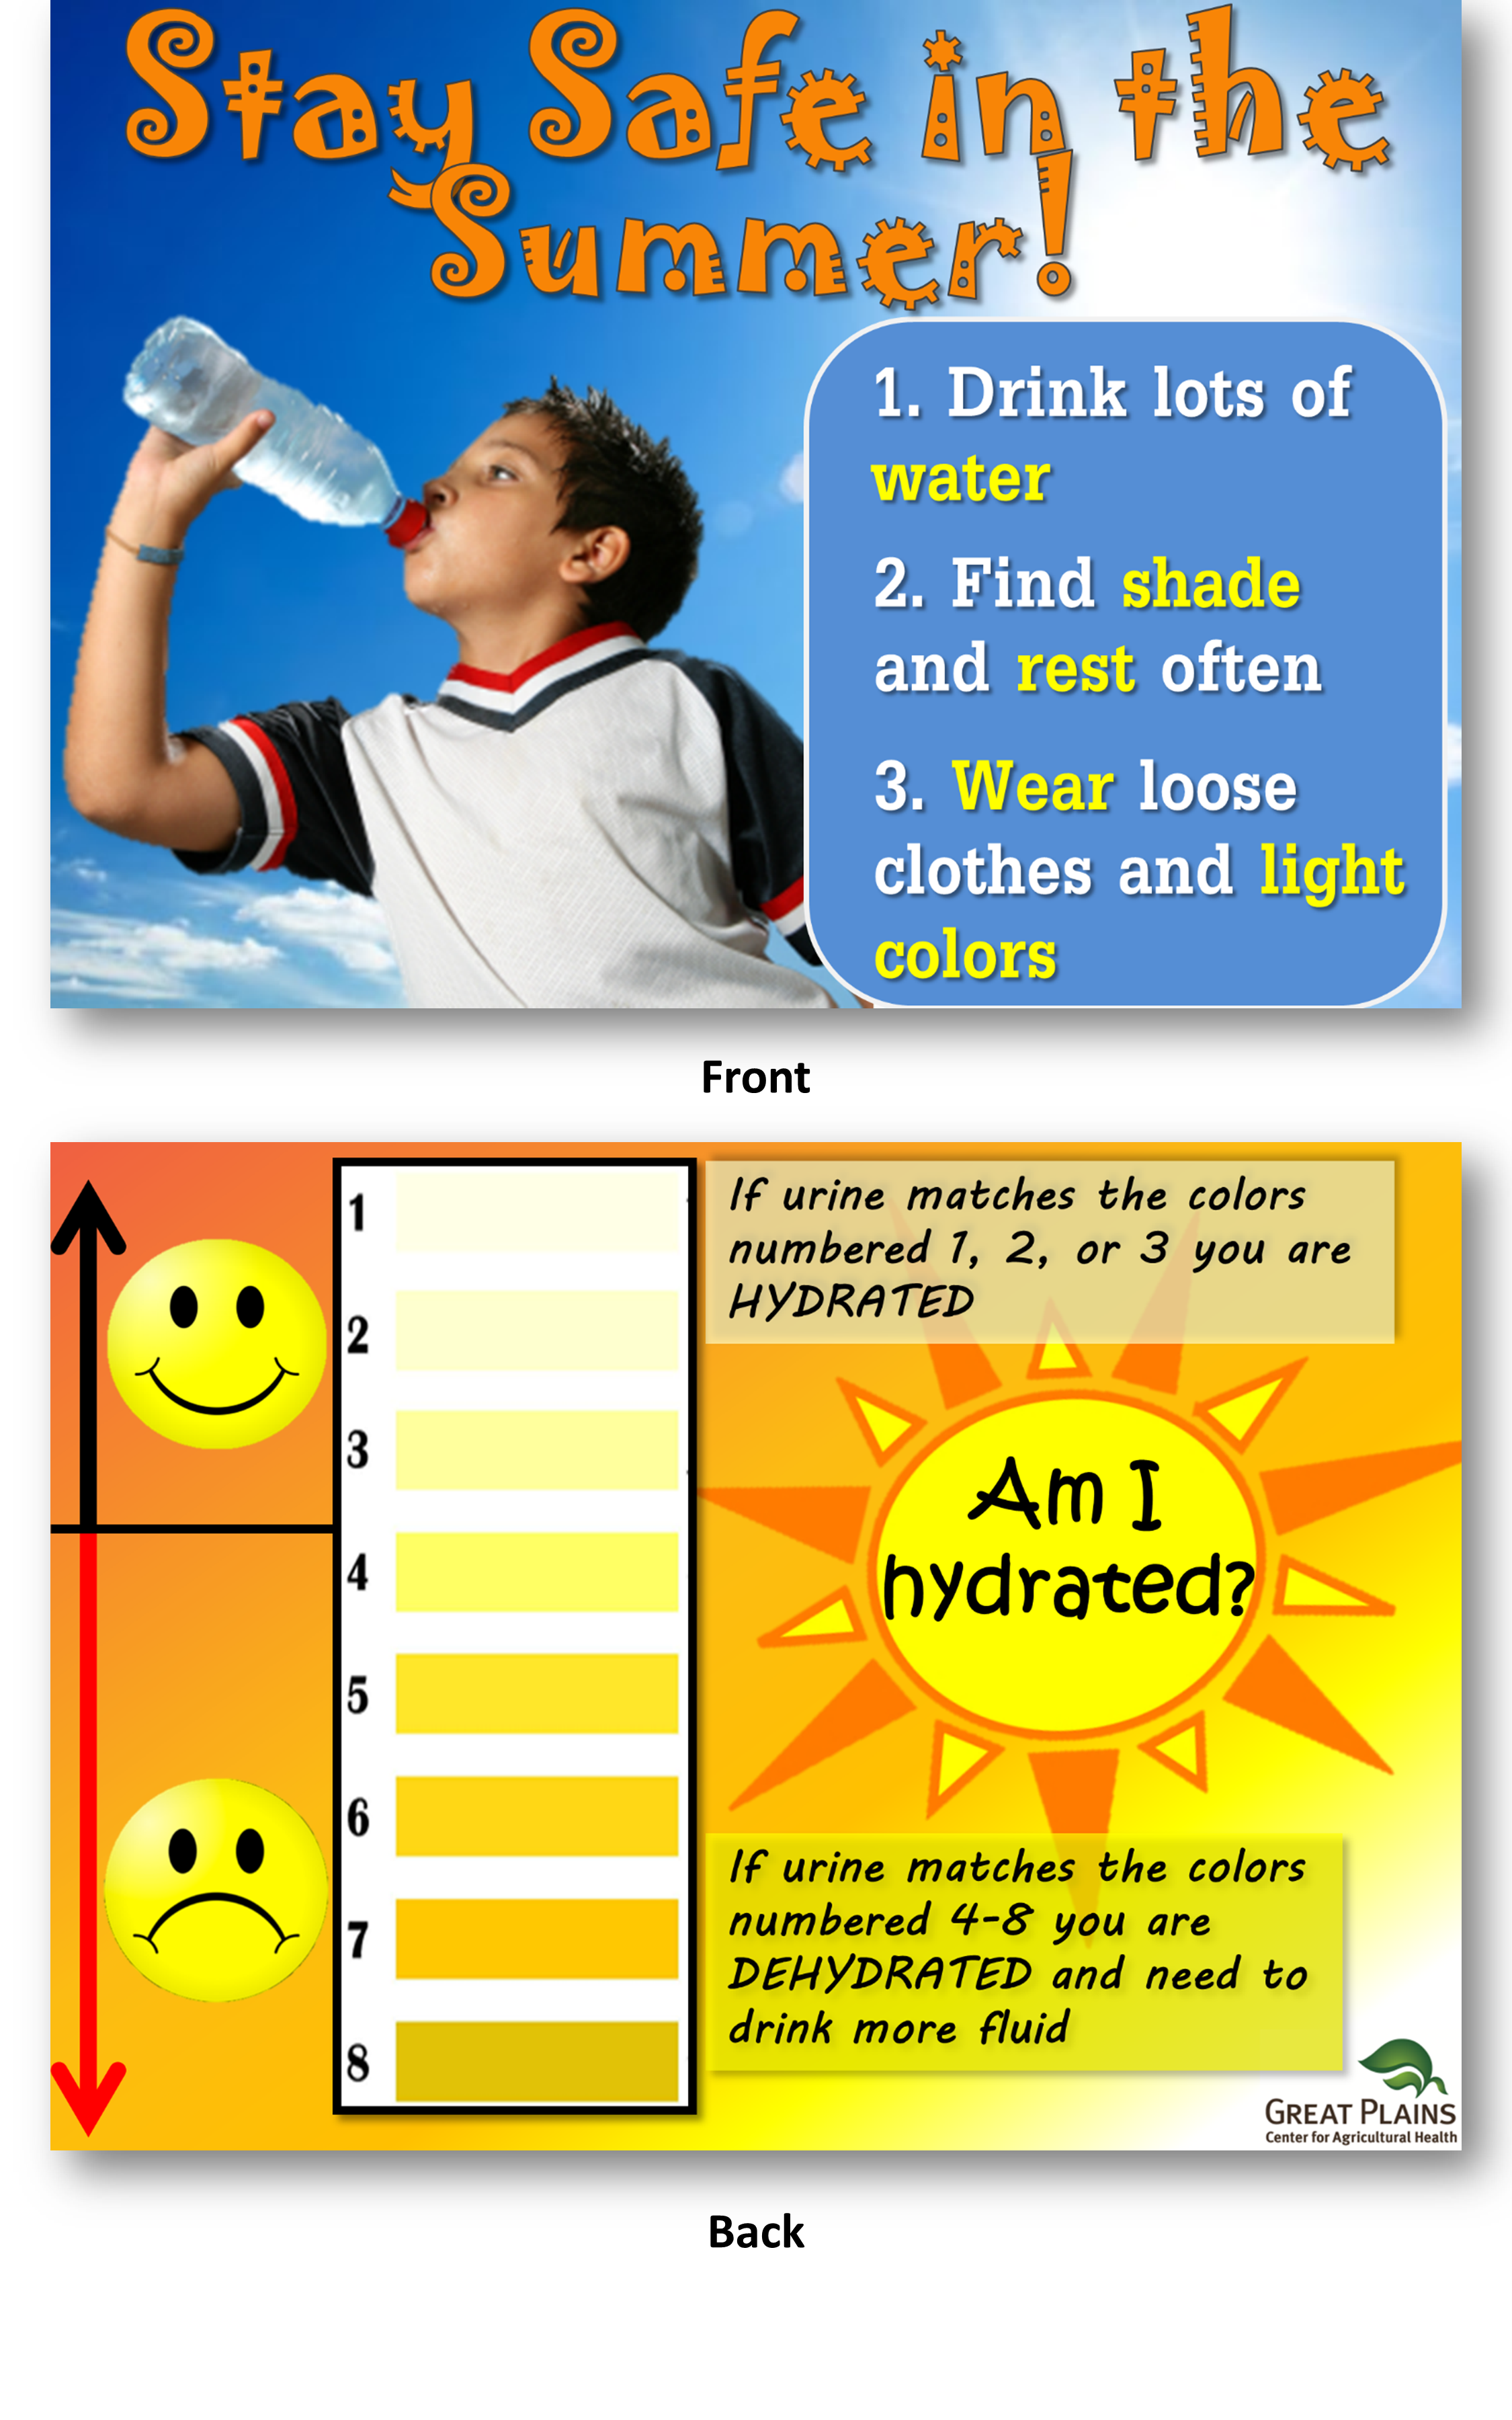 Heat Illness Prevention Great Plains Center For Agricultural Health